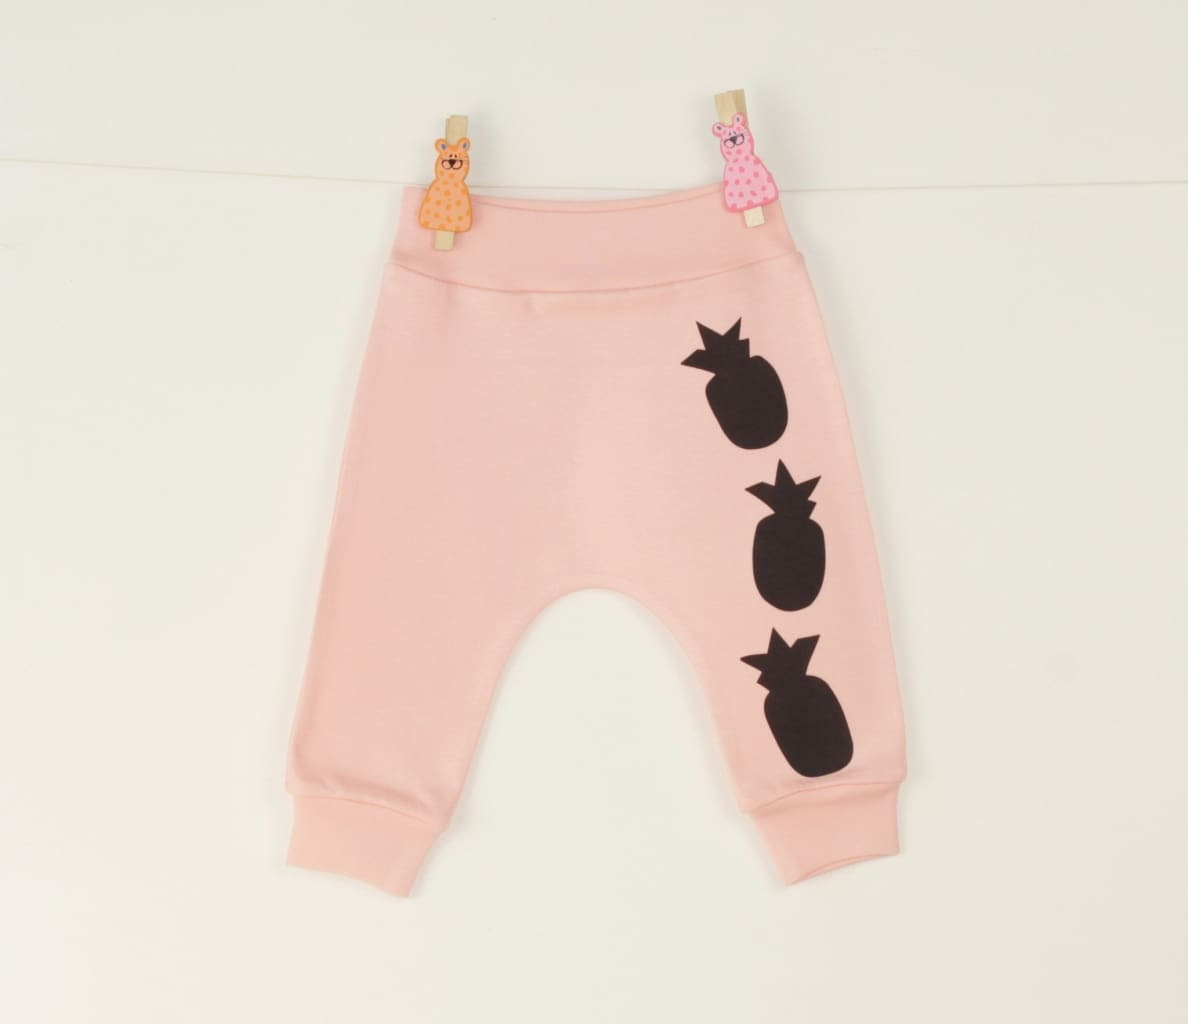 Baby Pants Pineapple - 1 - 3 Mnth (H-62 Cm) / Peach / Us - Baby Clothes